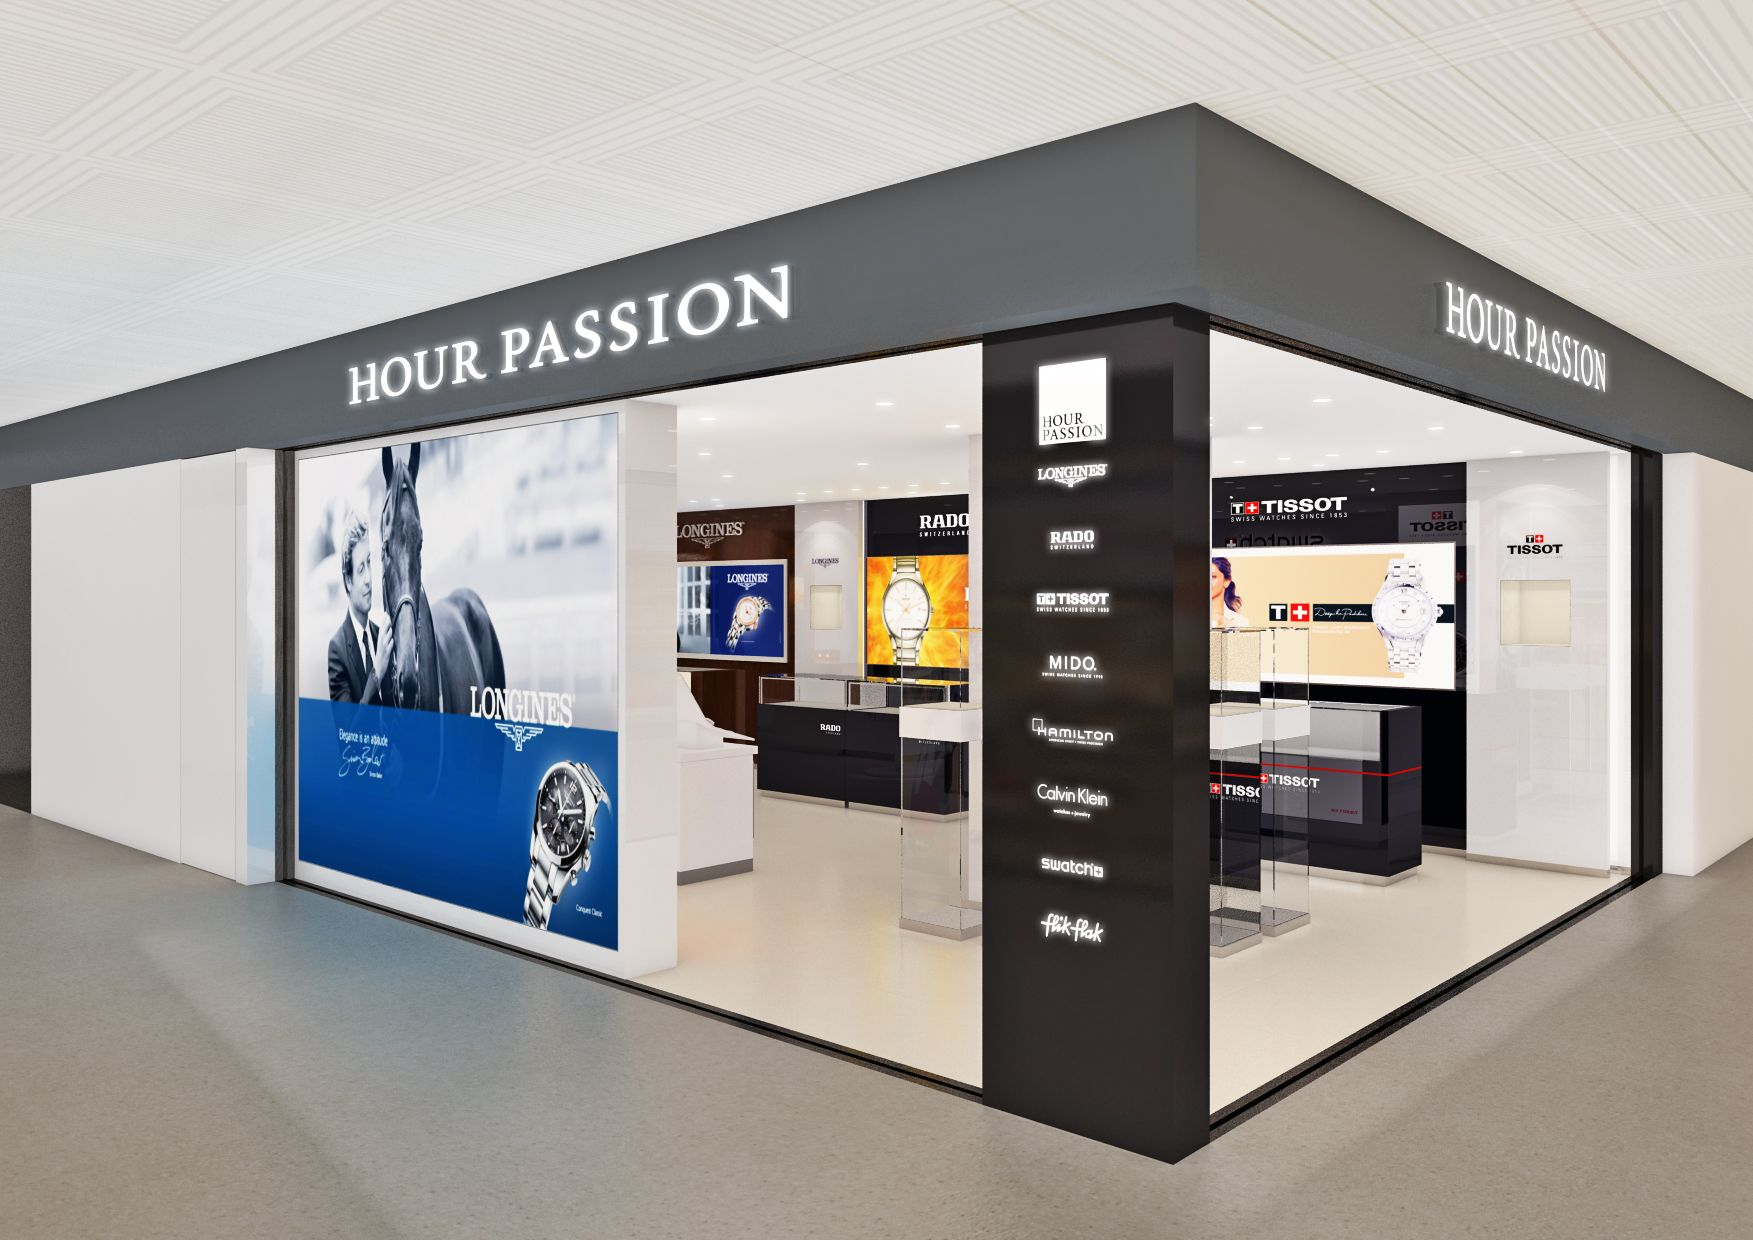 Hour Passion came to Kansai International Airport. #hourpassion #osaka #thelocationgroup   #shopopening #storeopening #elocations